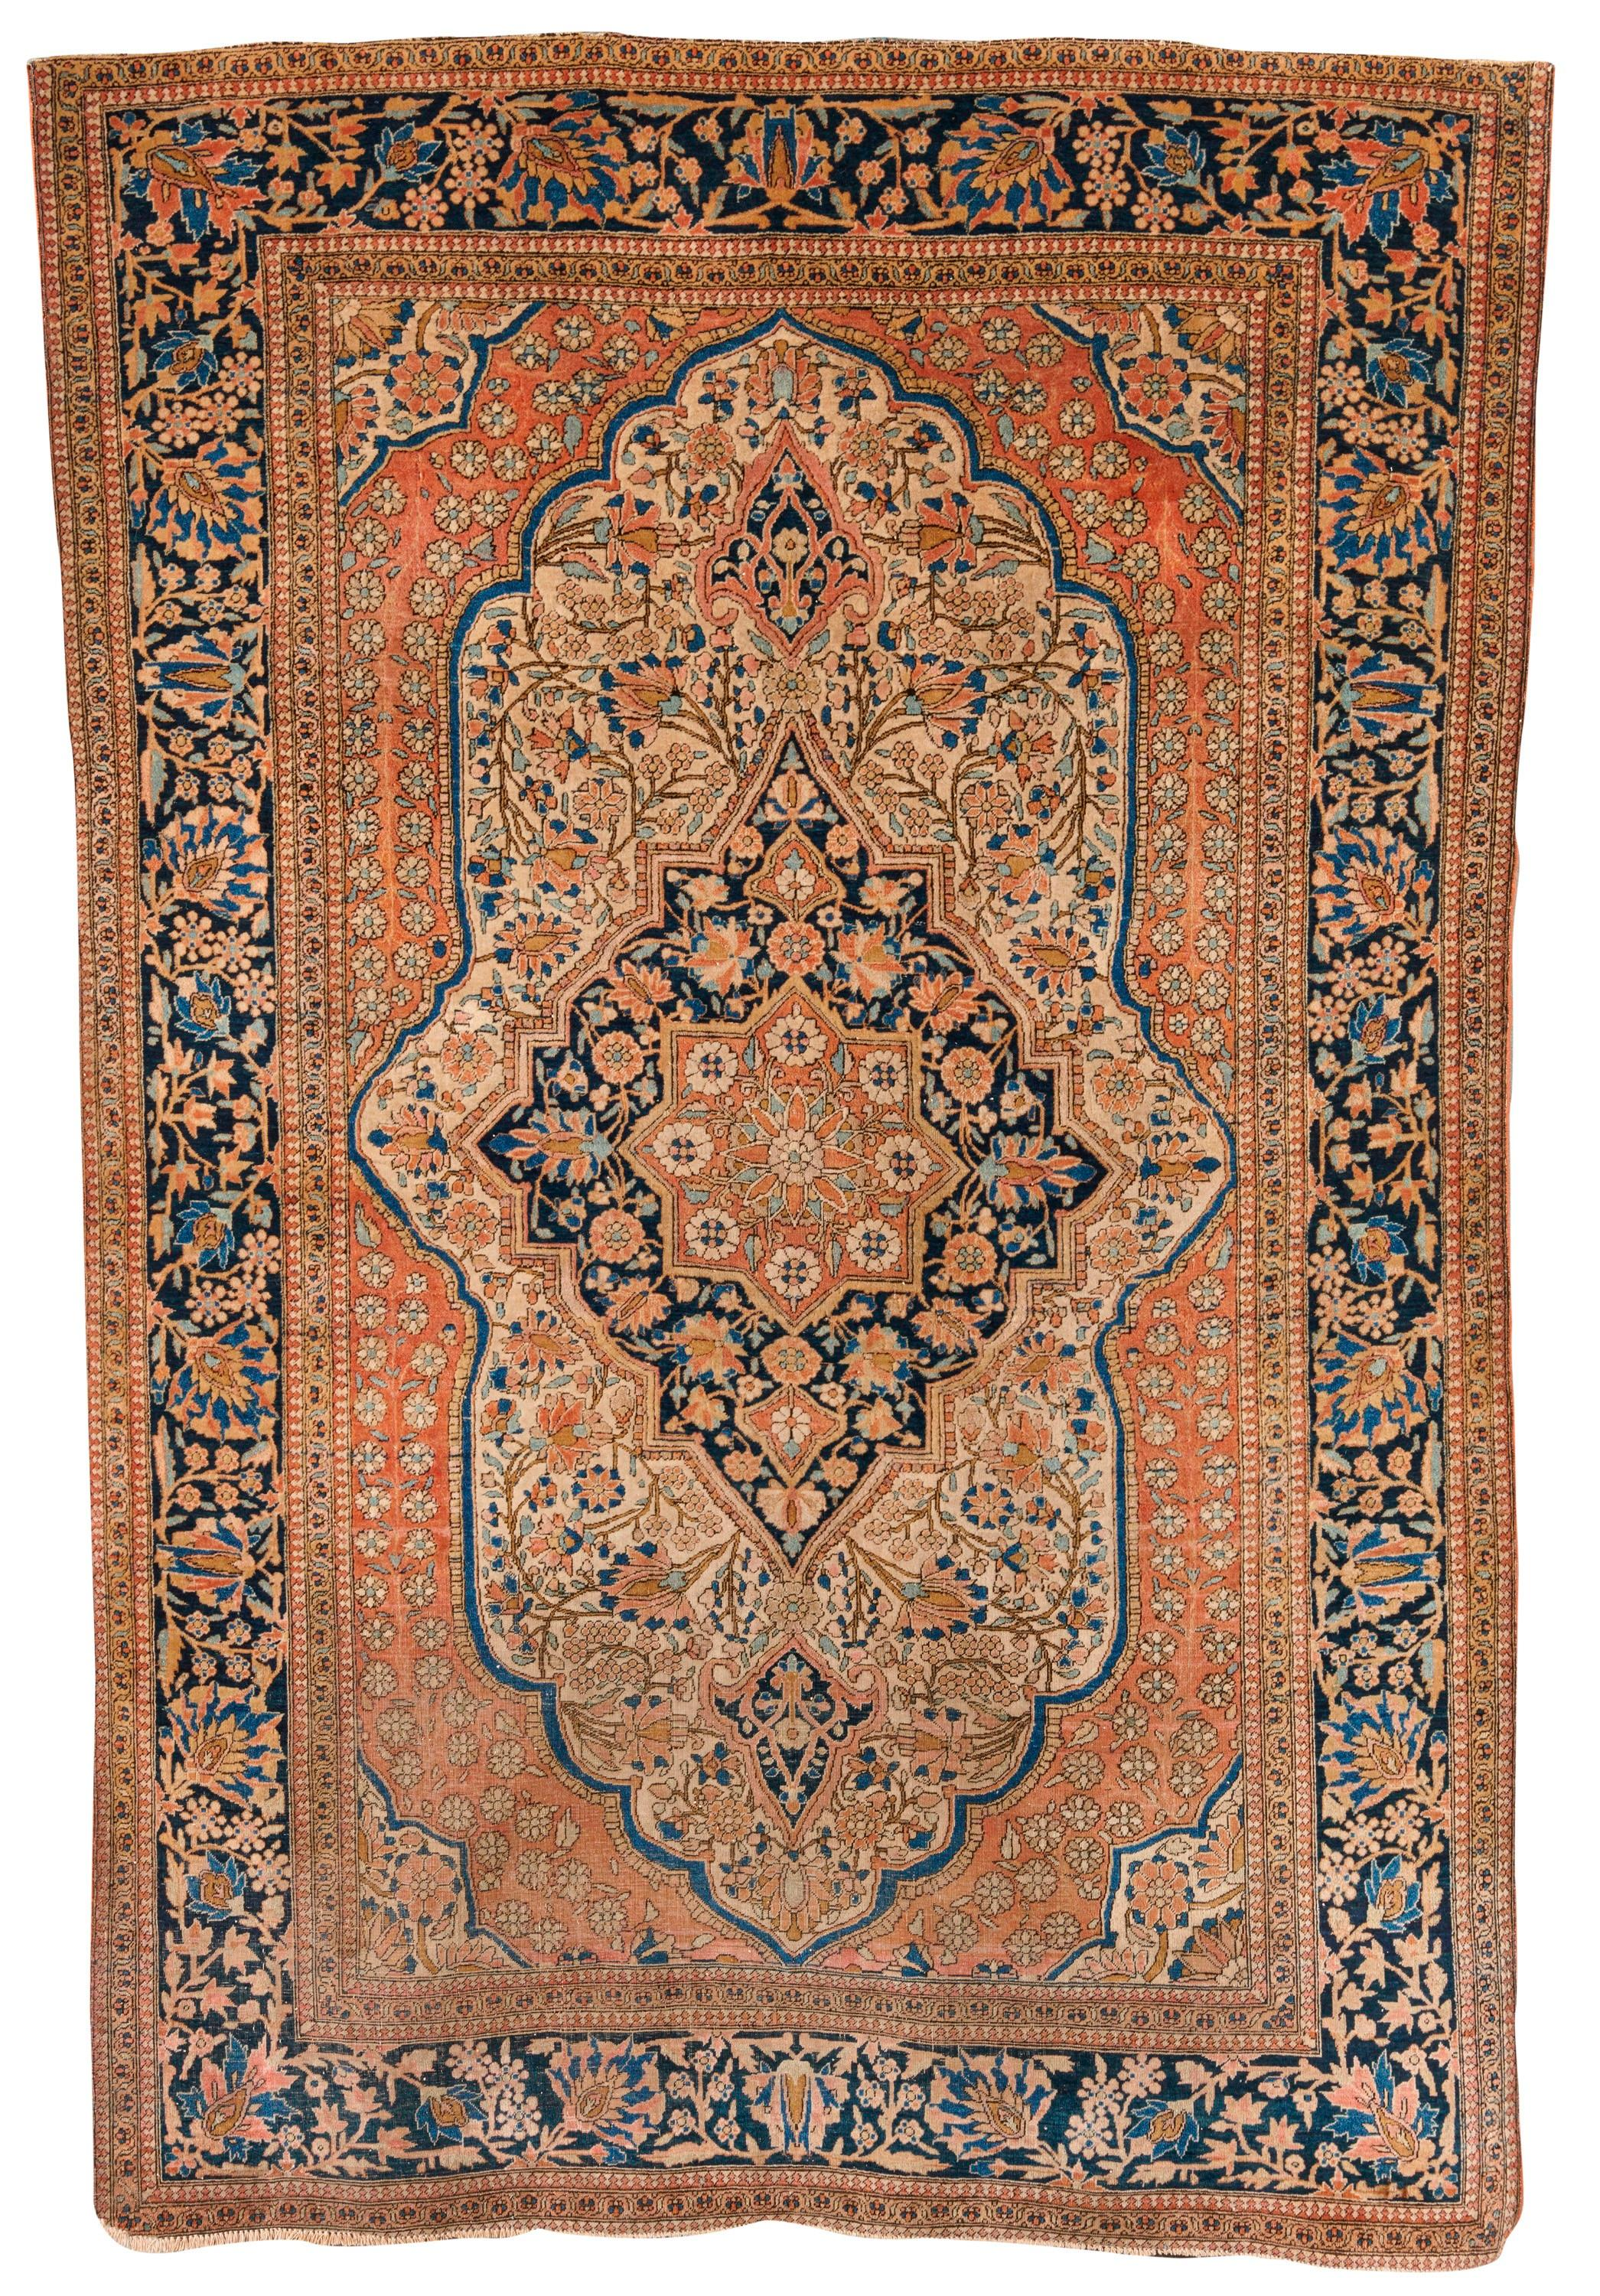 Mohtasham Kashan, Persia, ca. 1880; 6 ft. 8 in. x 4 ft. 5 in.